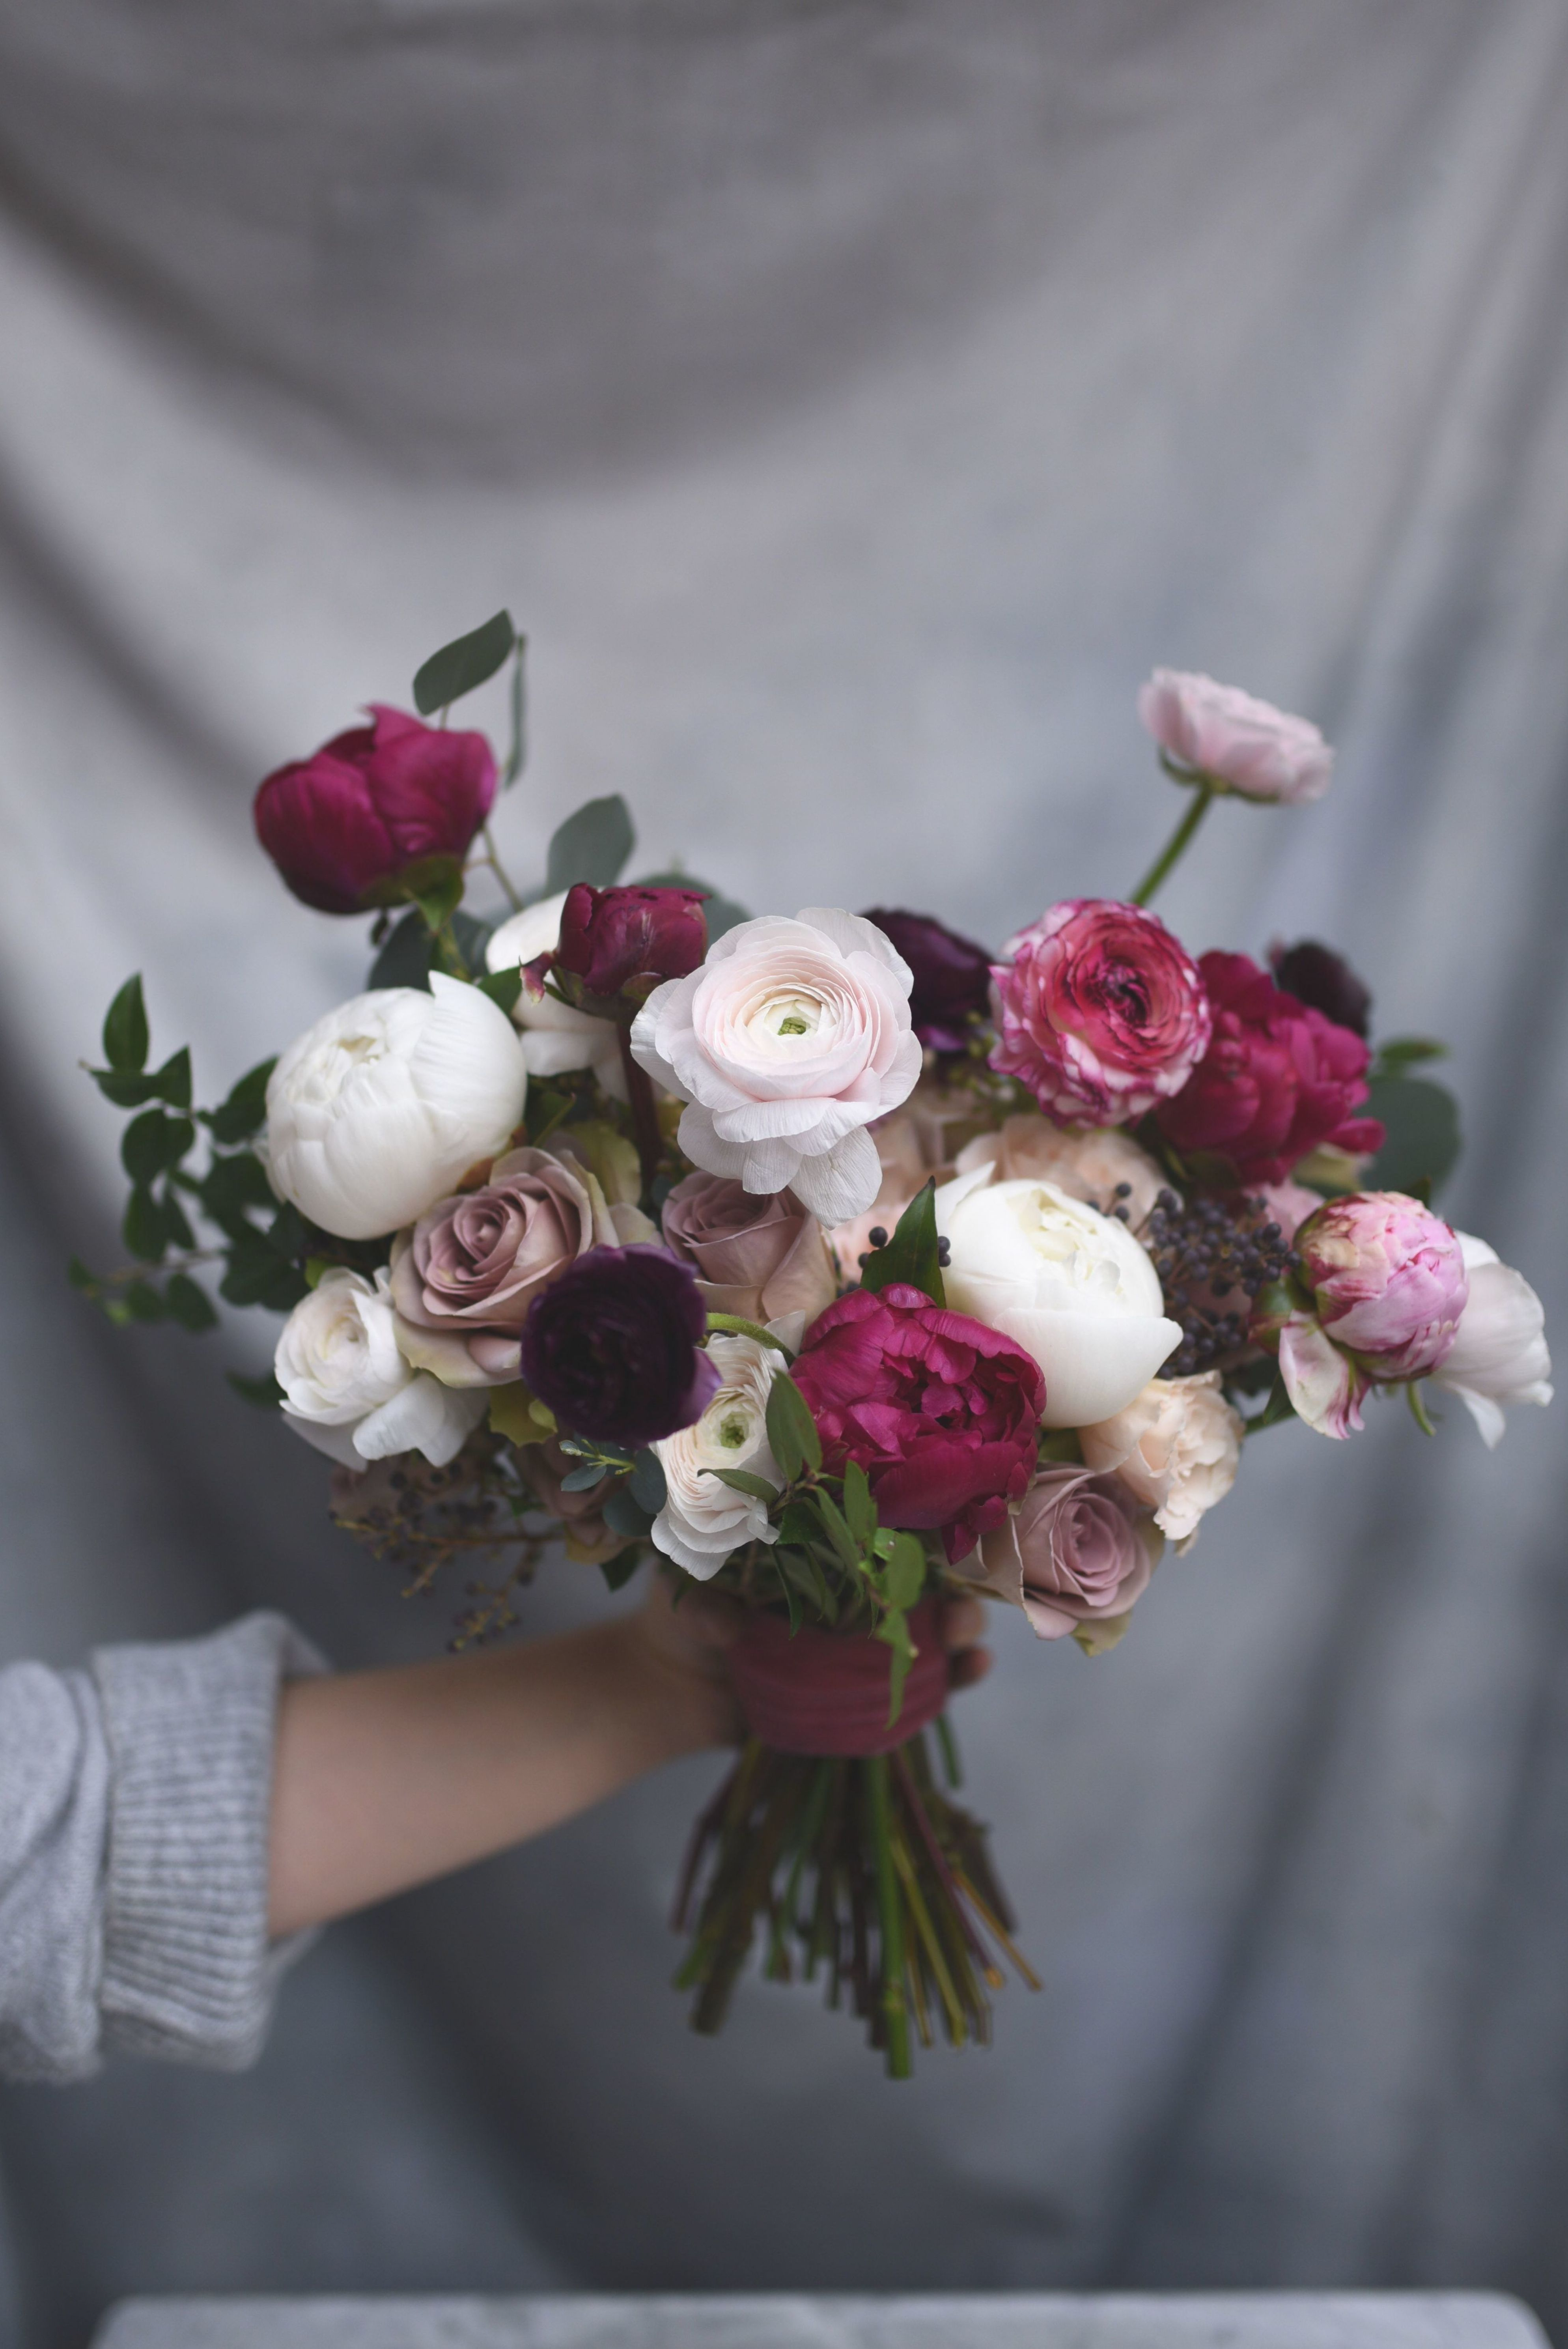 Bridal Bouquet Featuring Pale And Burgundy Peonies Ranunculus And Amnesia Roses With Green In 2020 Ranunculus Wedding Bouquet Ranunculus Wedding Peony Bouquet Wedding